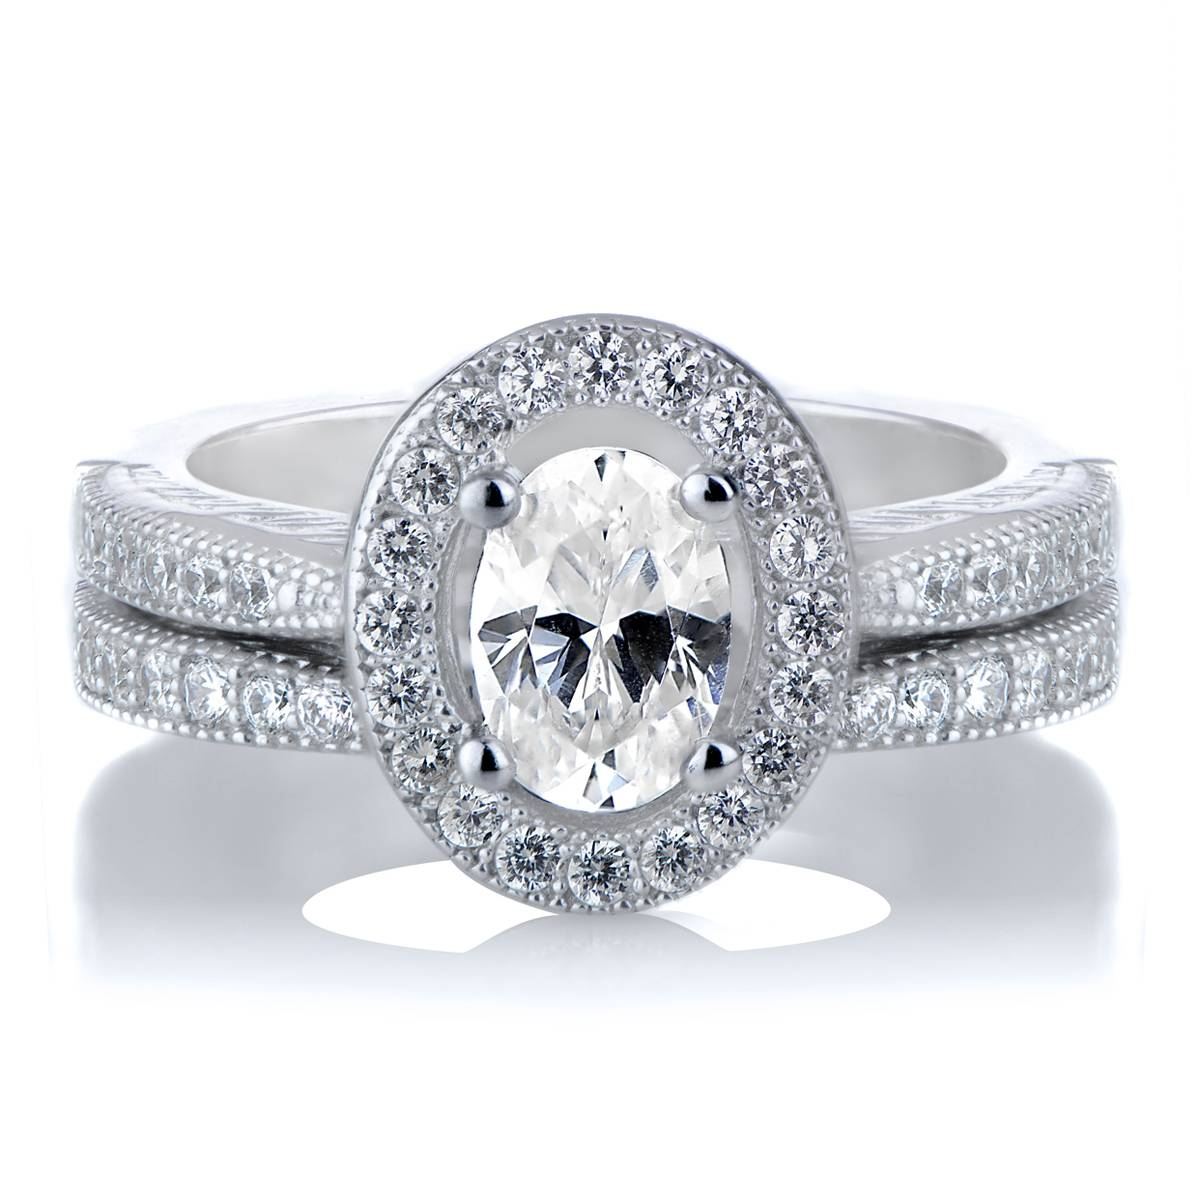 Kiara's Oval Cut Cz Halo Wedding Ring Set In Oval Wedding Rings Sets (View 8 of 15)